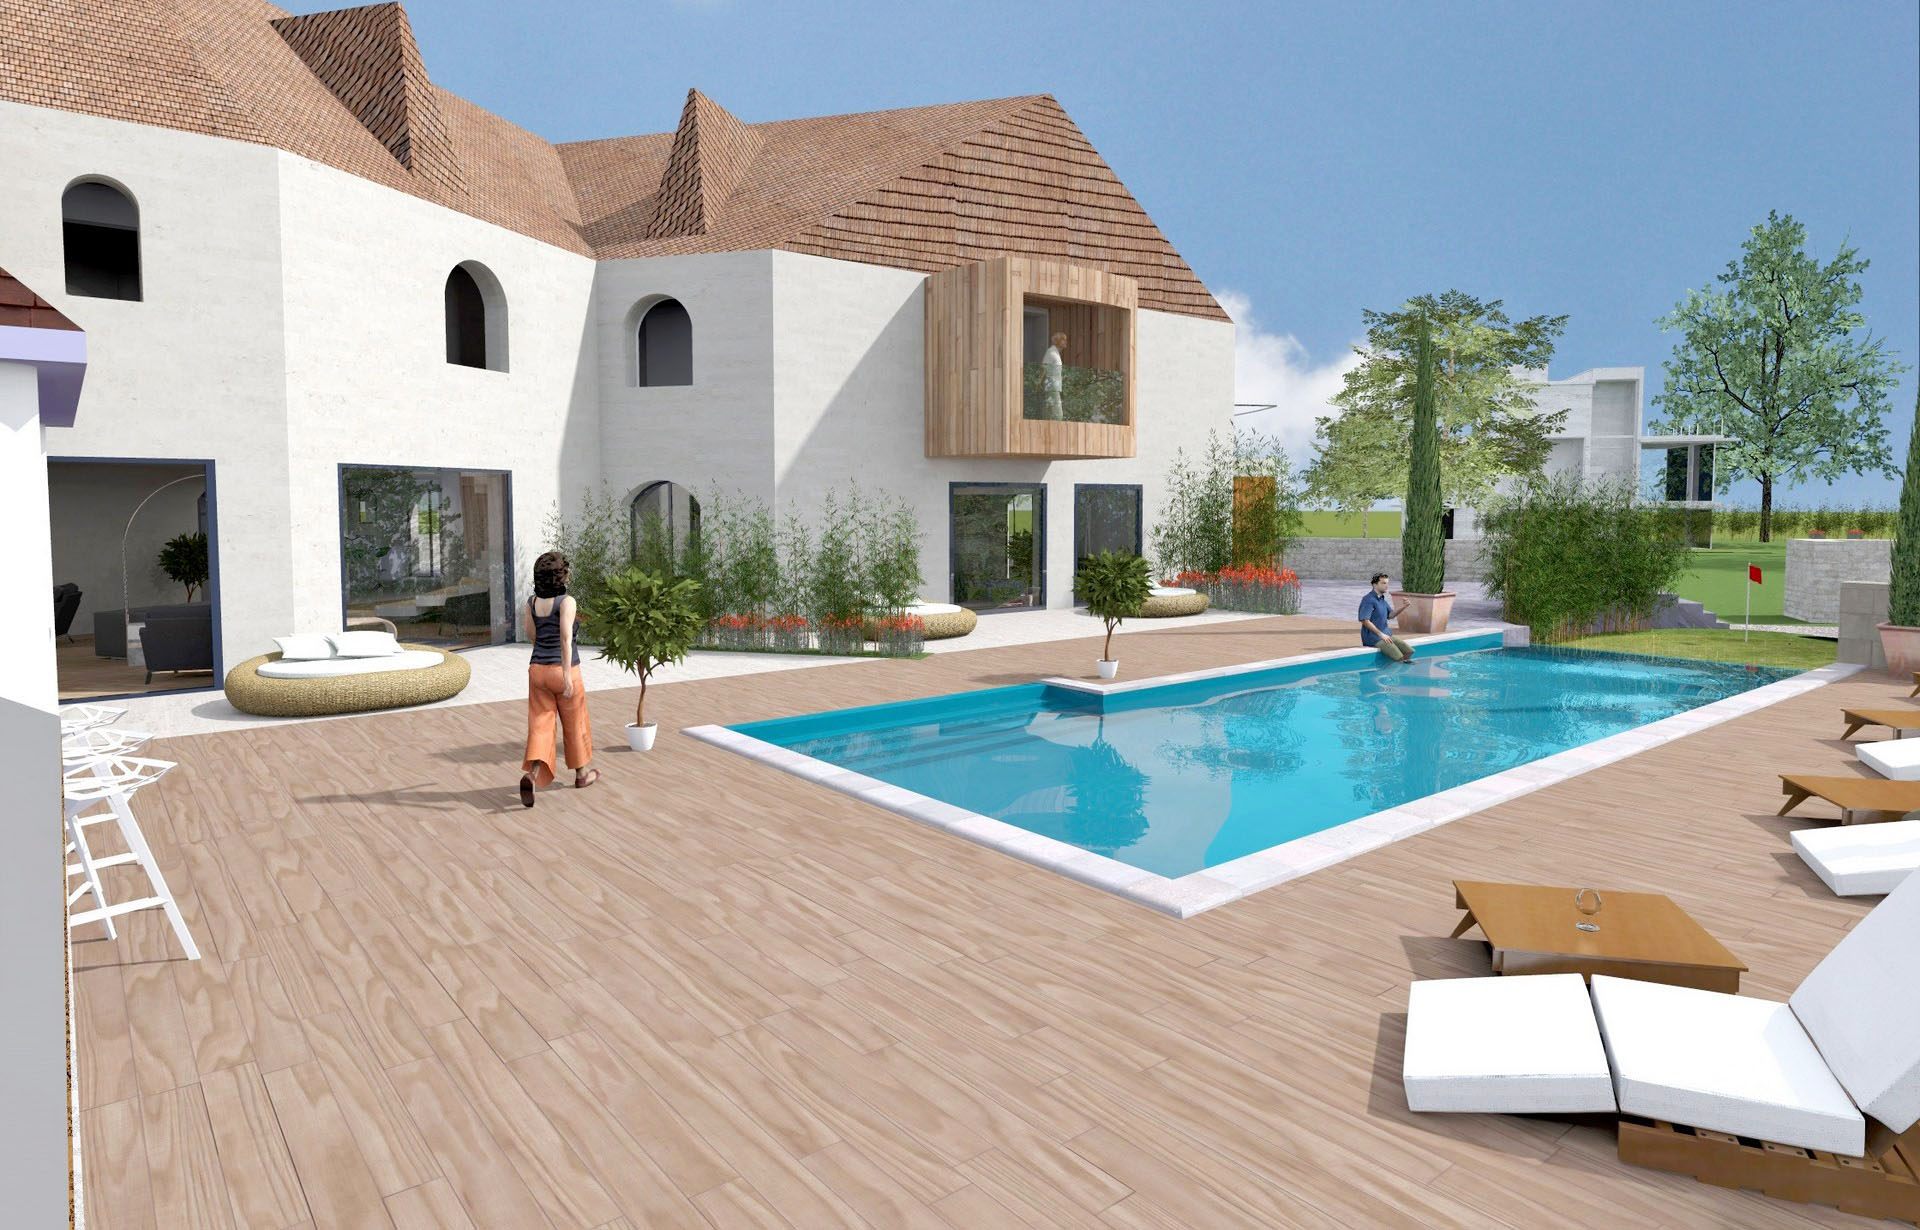 Piscine exterieur amenagement accueil design et mobilier for Exterieur piscine